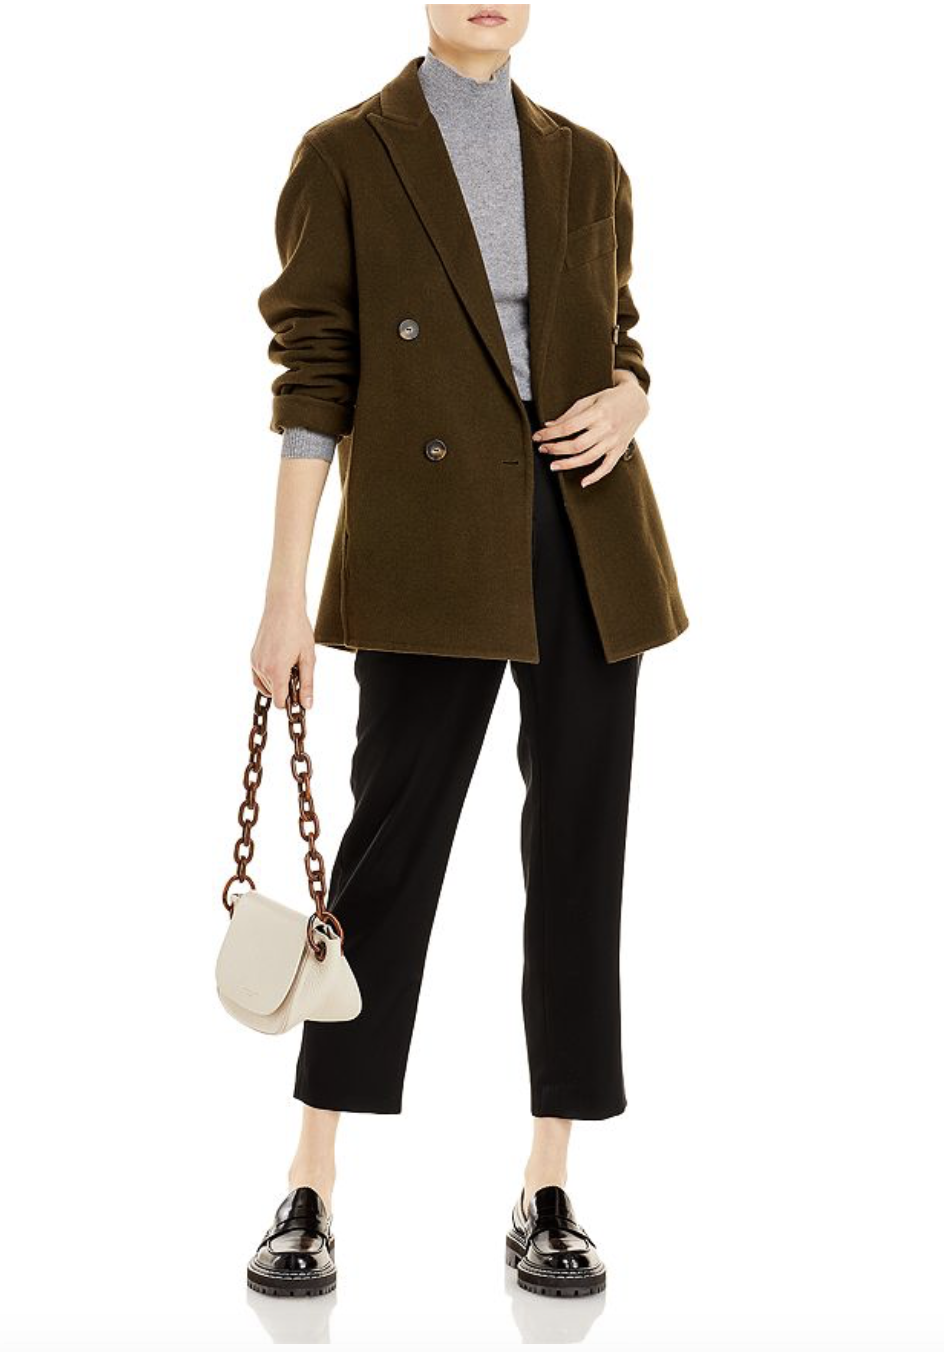 Bloomingdale's: Up to 50% off Designer styles